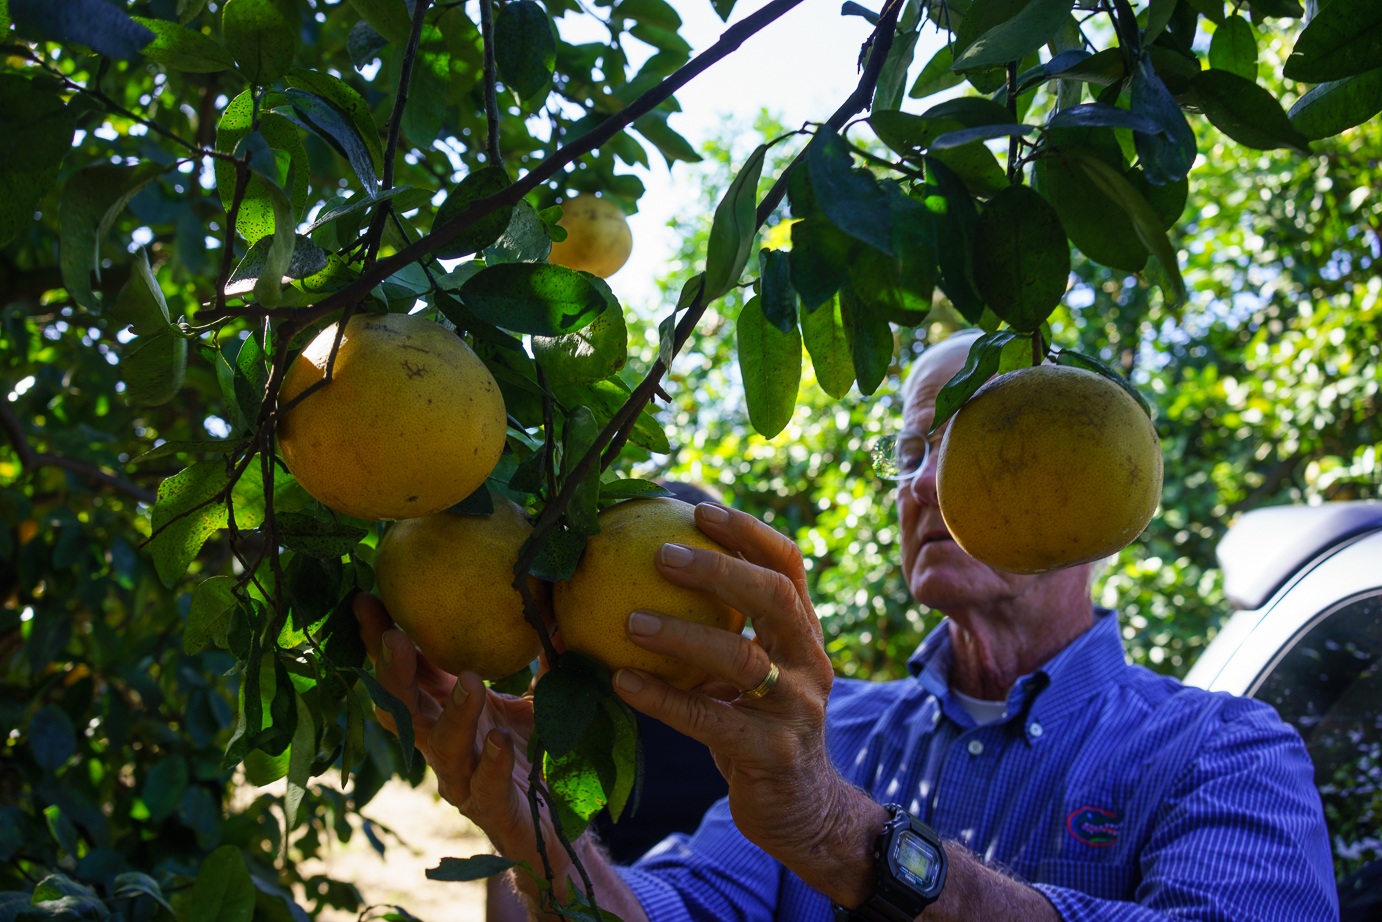 Uncle Matt's is one of our biggest Florida partners, providing pomelos (so so good) and various orange varieties like Sunburst and Cara Cara.